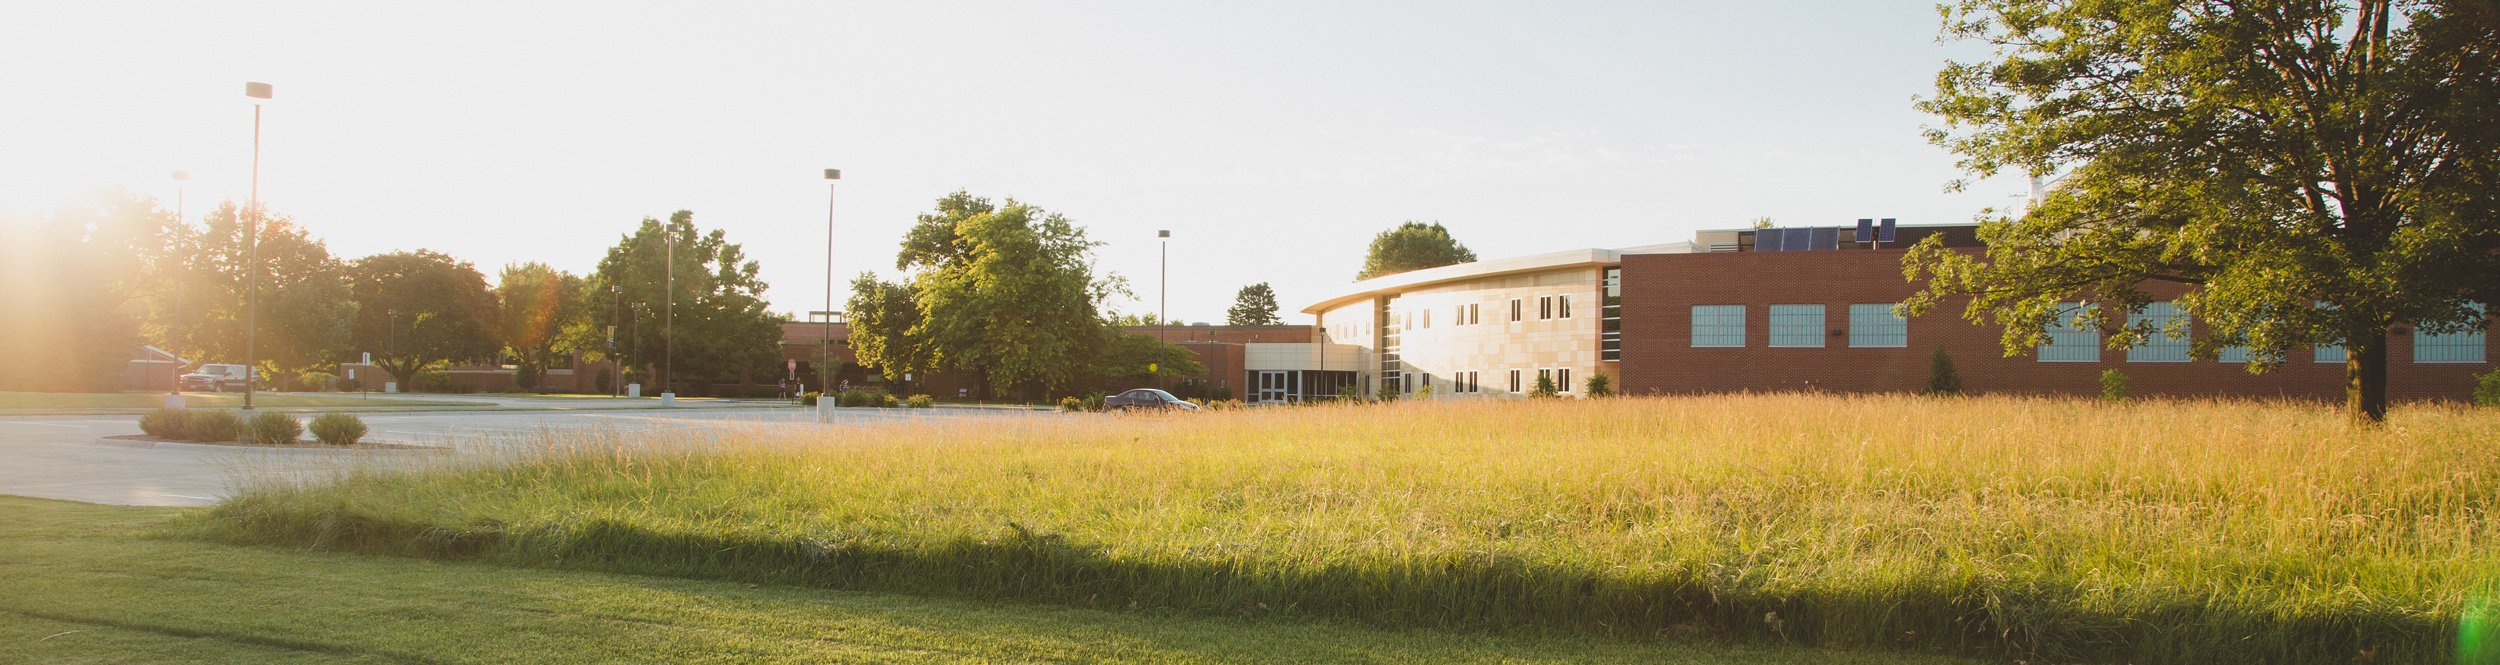 A large brick science building behind green grass.